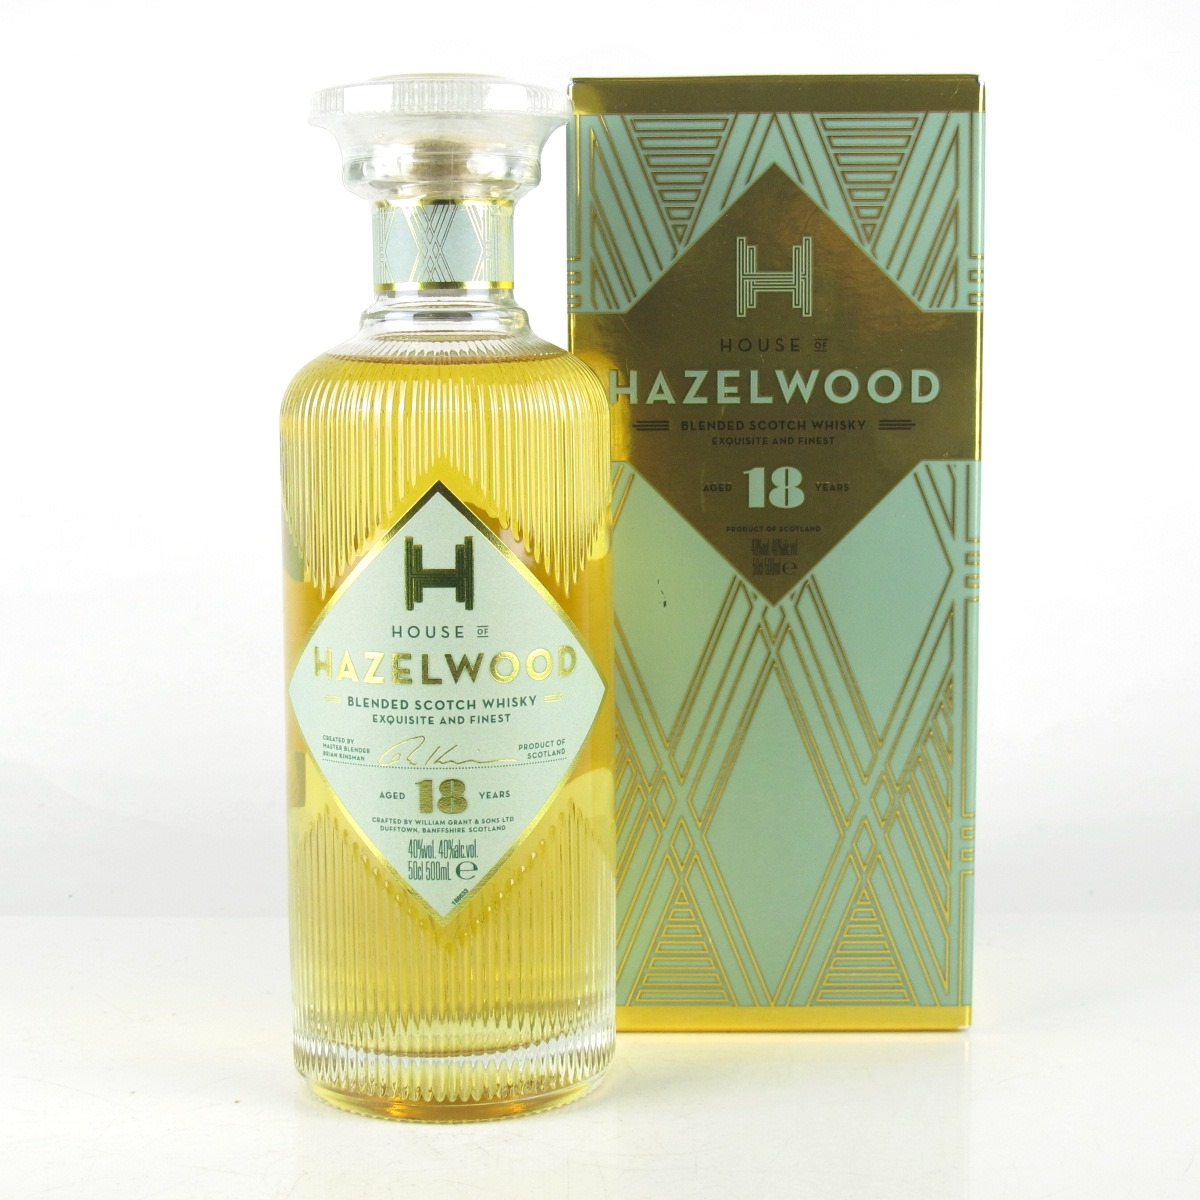 House Of Hazelwood 18 Year Old Blended Scotch Whisky 50cl